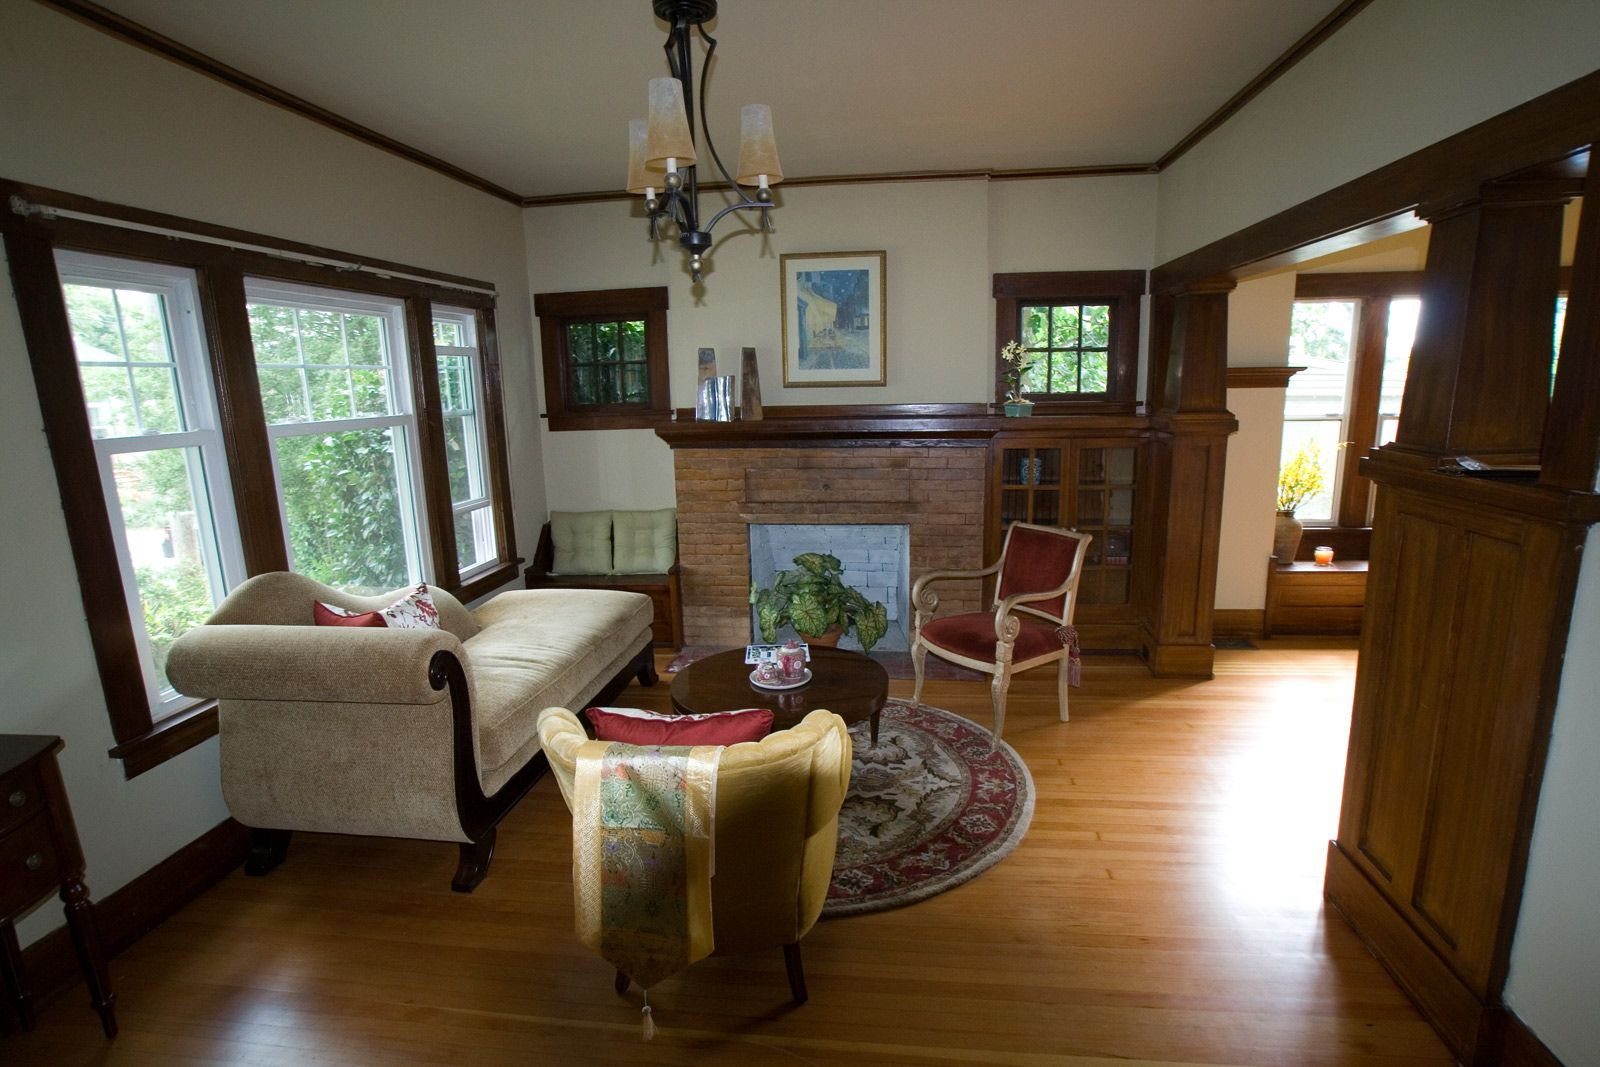 Interiors Arts And Crafts Bungalow Homes Craftsman Style Bungalows Home  Interior Design Zen Times Like By